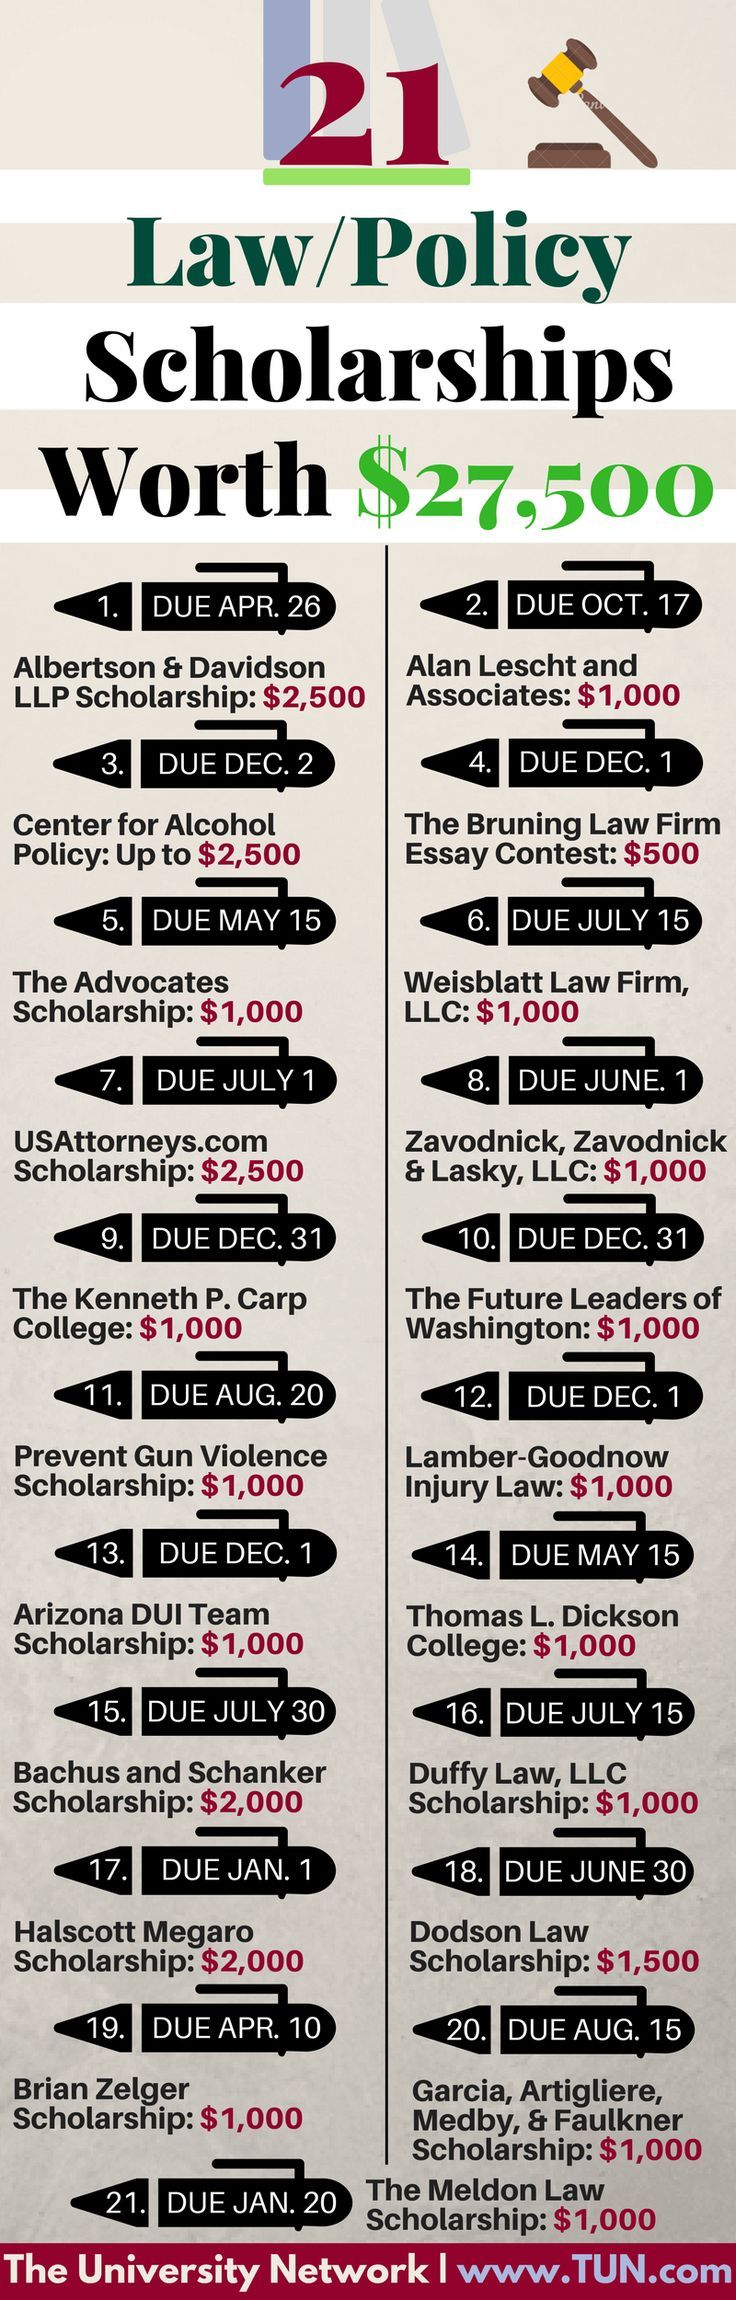 All the scholarships in this list have topics related to law and policy. Not all scholarships require you to be a law student although an interest in law helps!